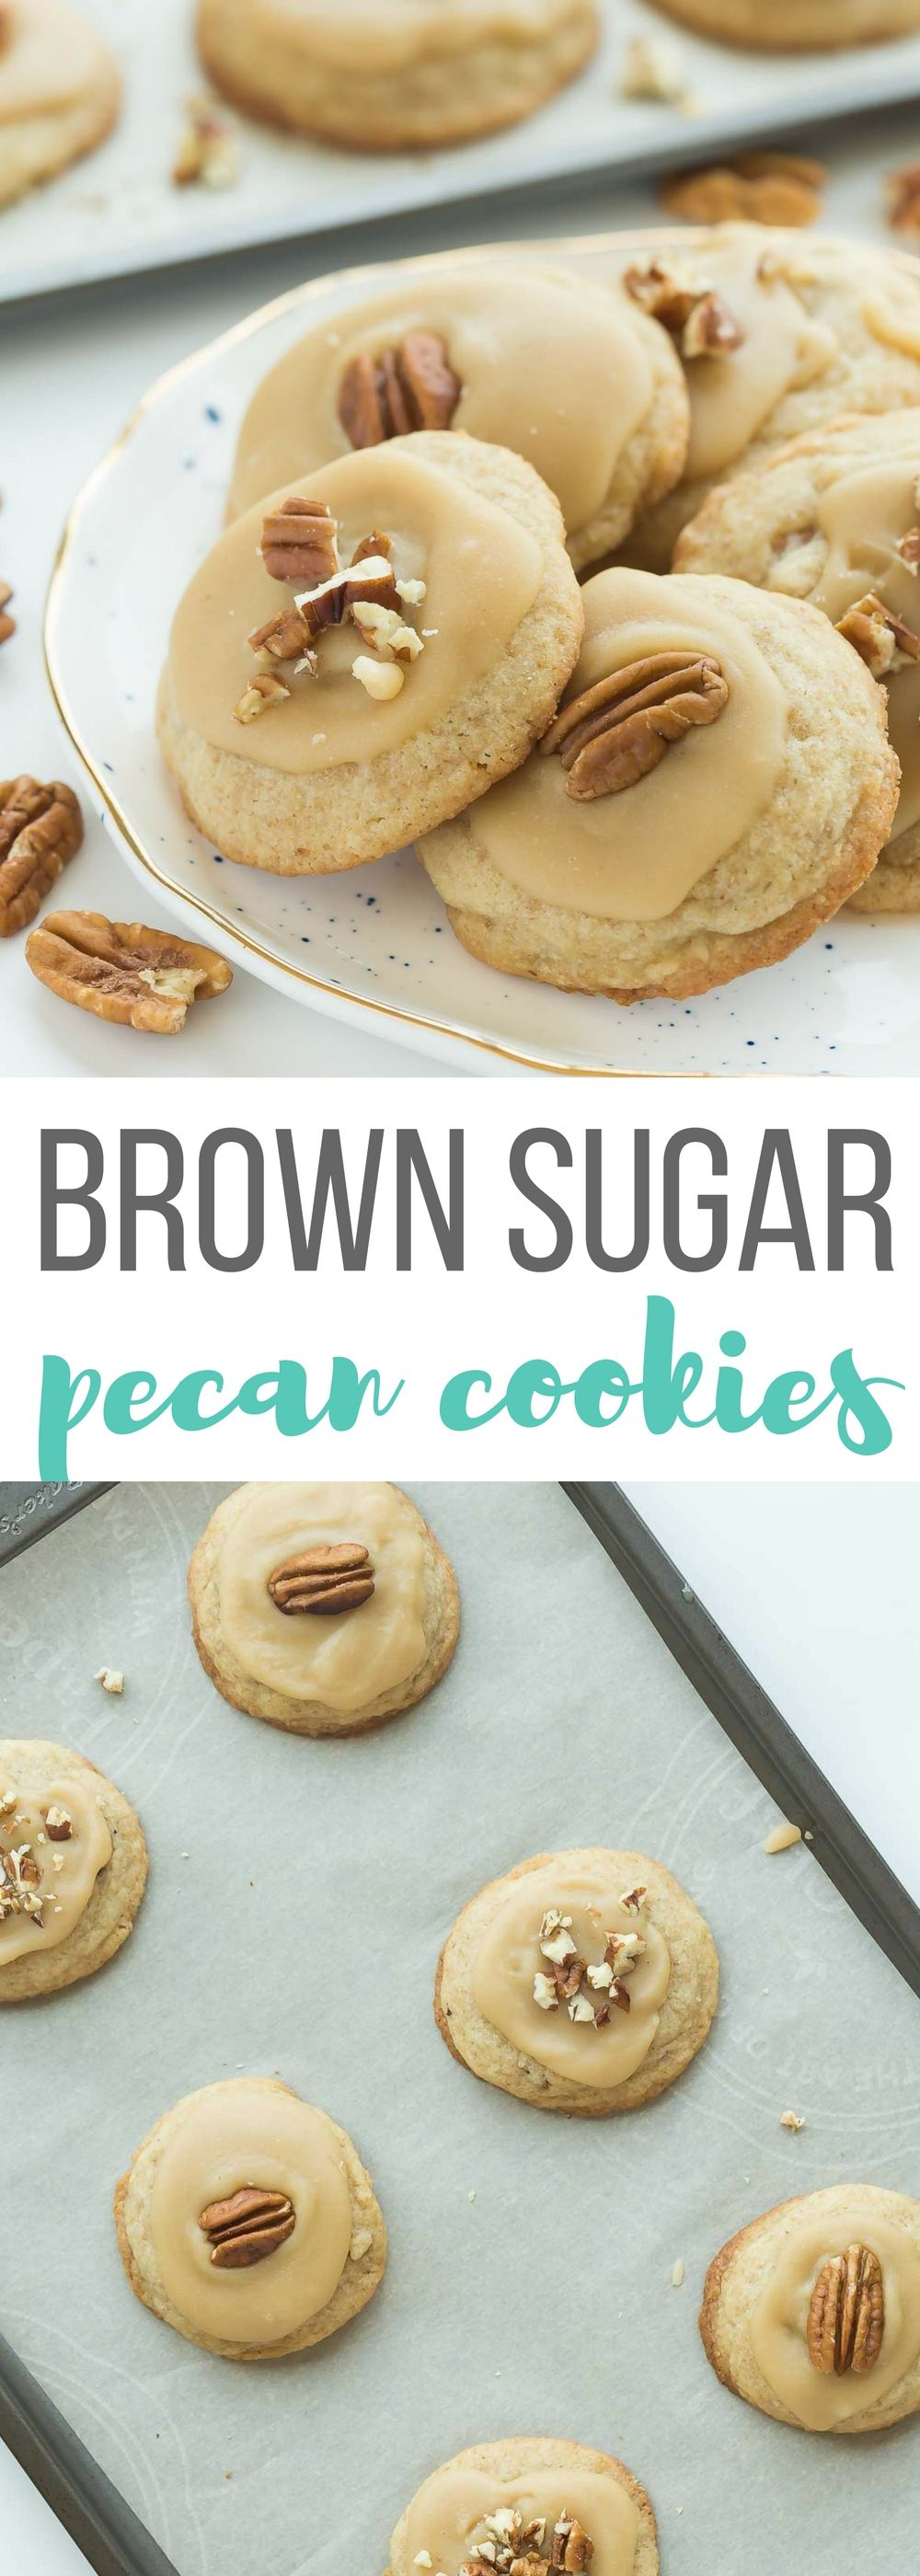 These Brown Sugar Pecan Cookies are soft, buttery, brown sugar cookies topped with brown sugar frosting and more pecans -- perfect for Christmas baking or any day of the year! Includes step by step recipe video   sugar cookies   soft cookies   Christmas cookies   fall baking   cookie exchange   #Christmascookies #Christmasbaking #sugarcookies